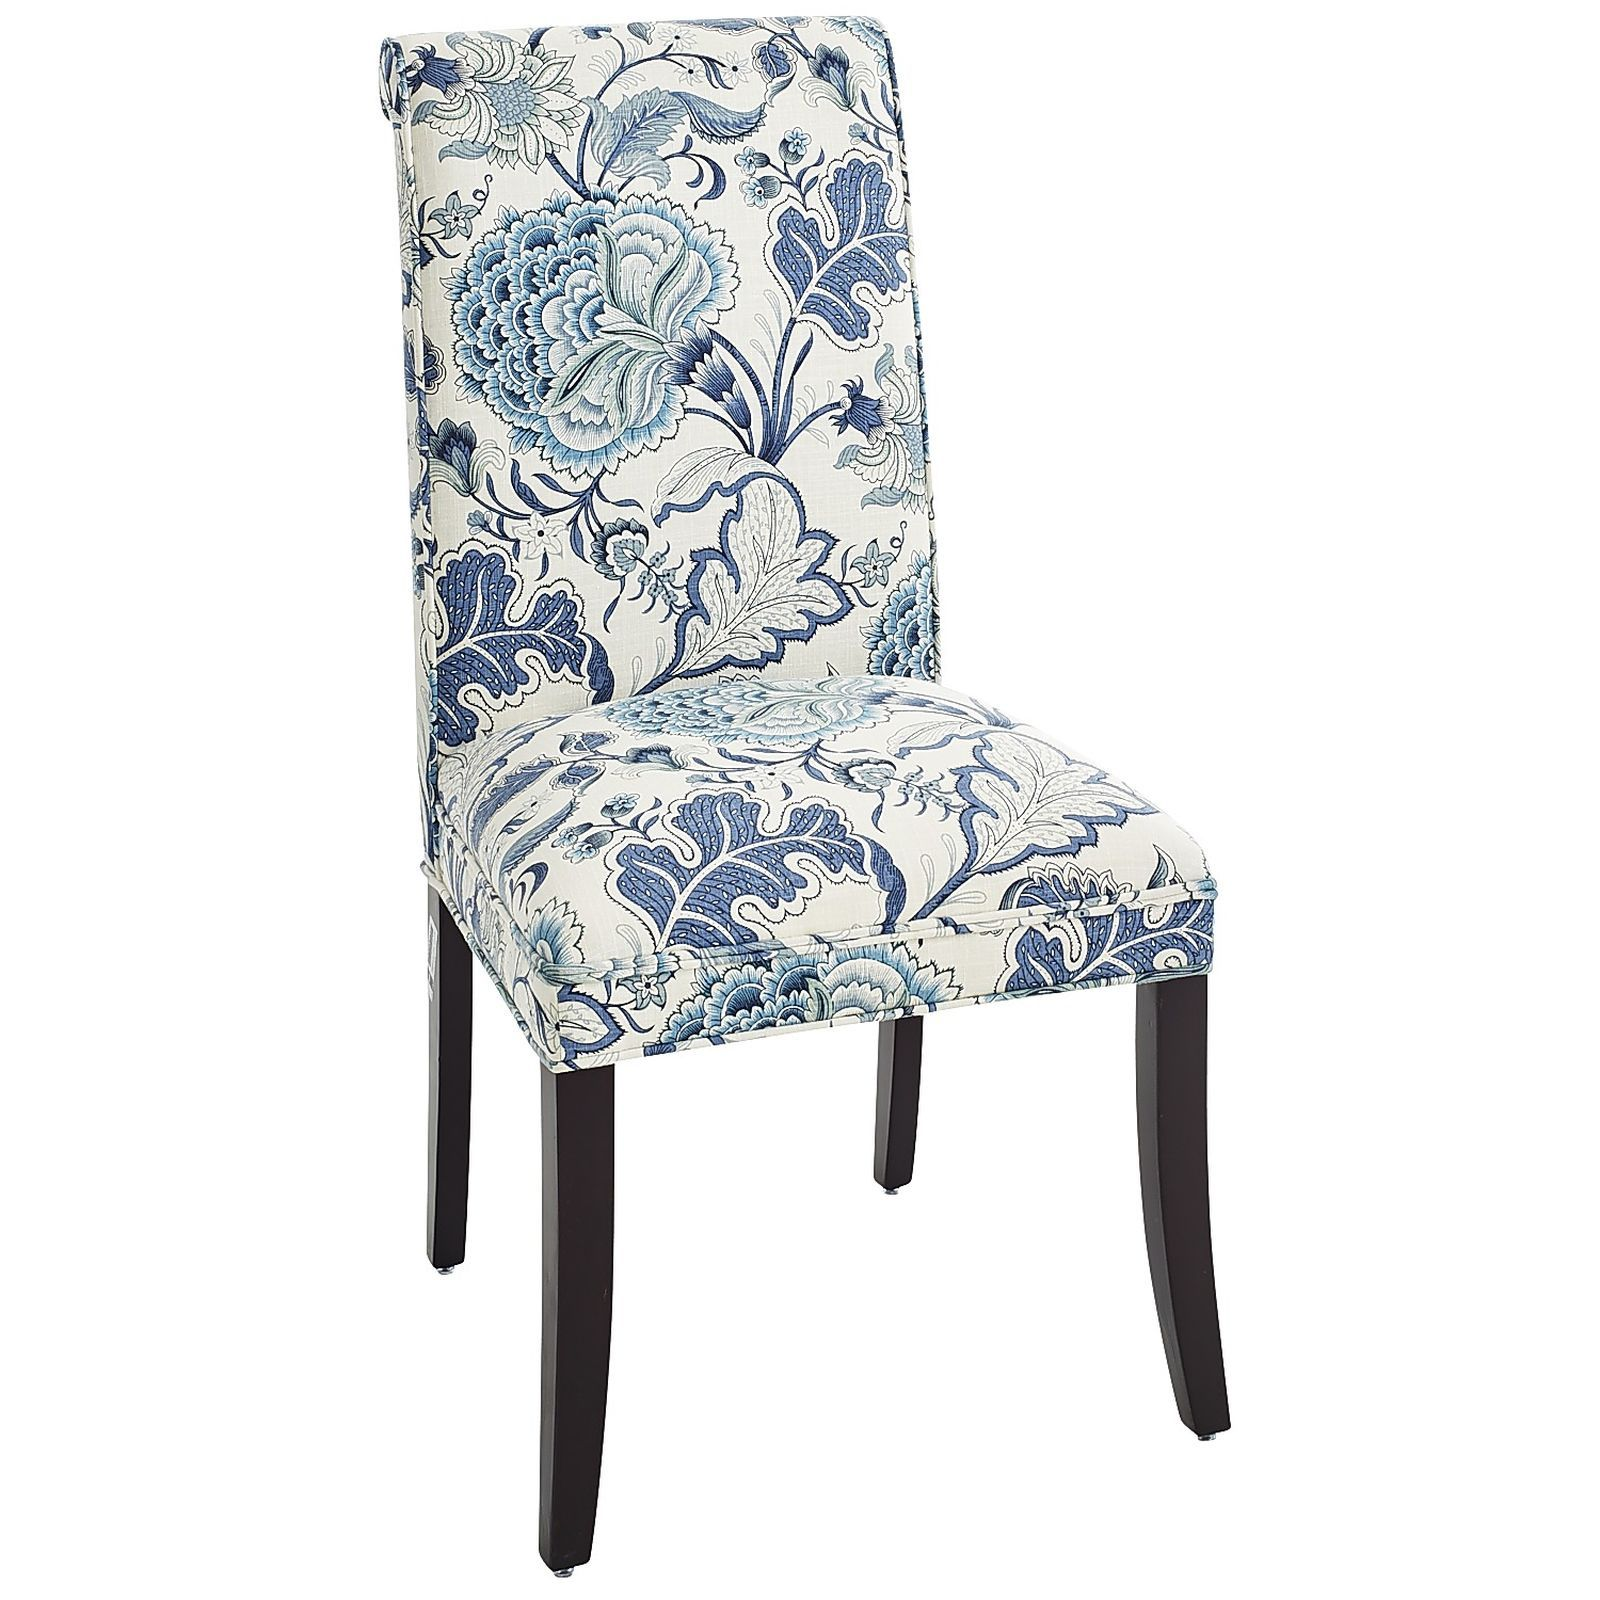 Angela Deluxe Dining Chair Indigo Meadow Pier 1 Imports Dining Chairs Upholstered Chairs Chair